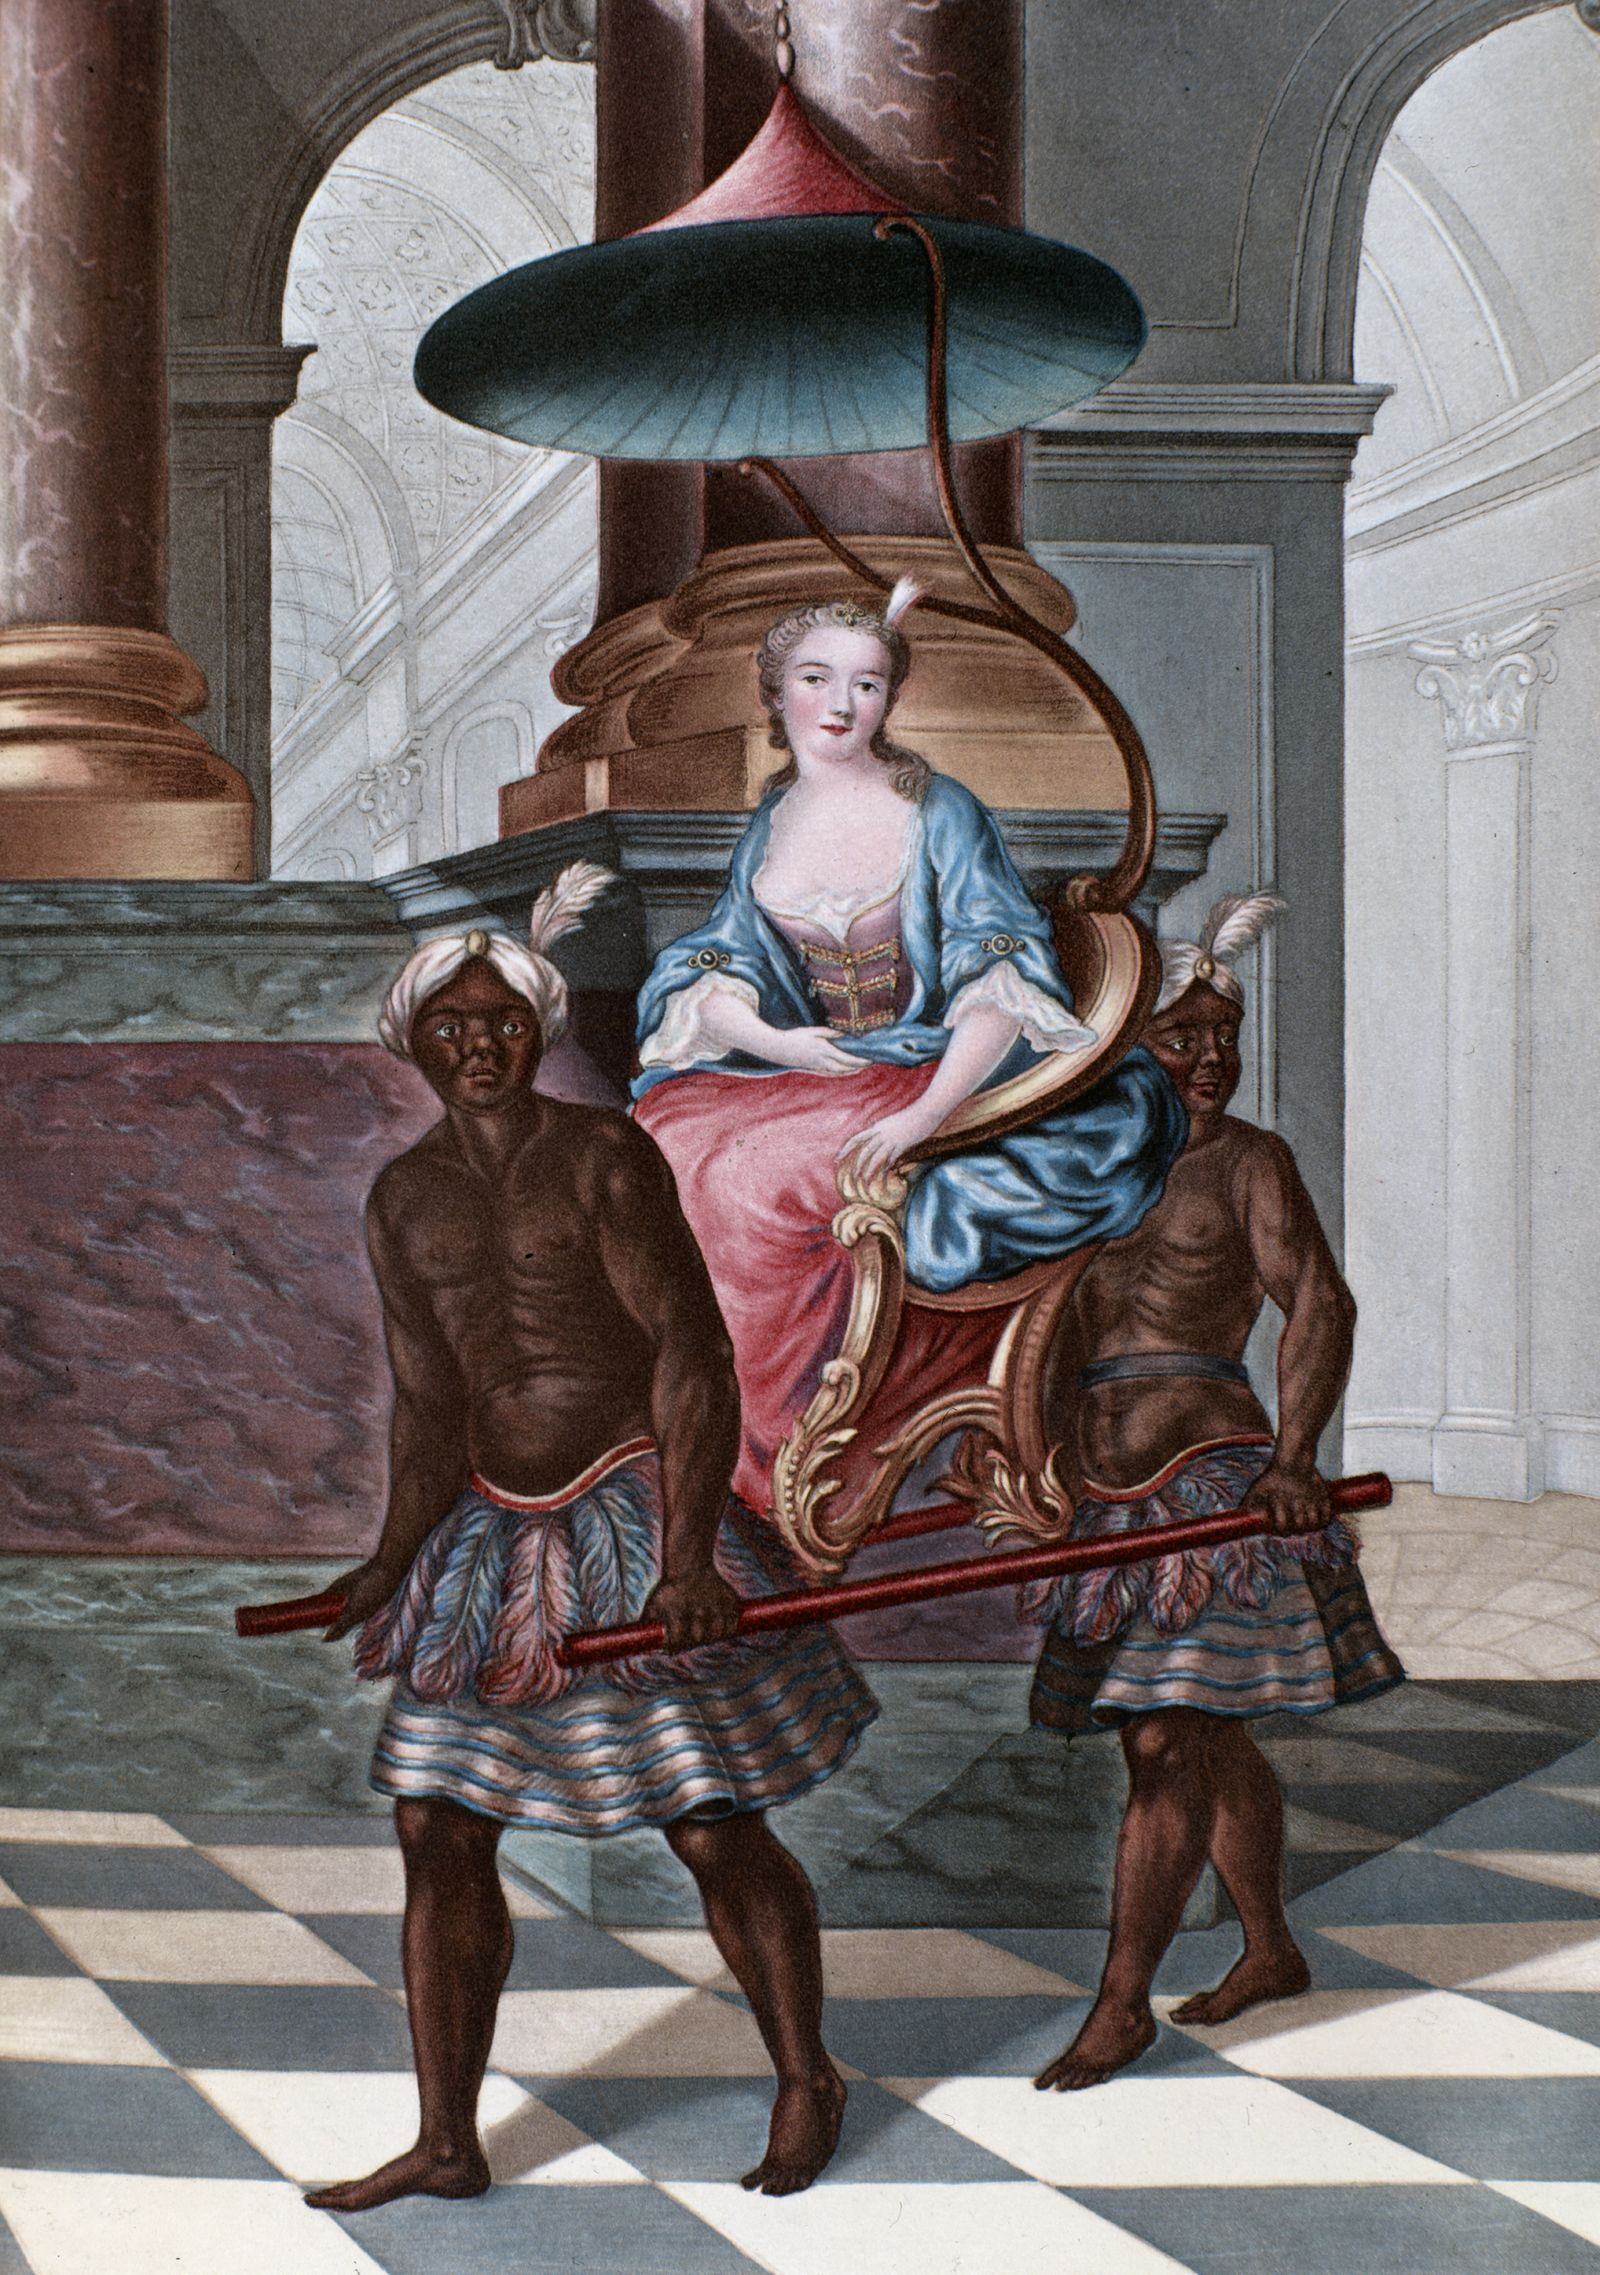 18th century depiction of a woman carried on a sedan chair by african servants